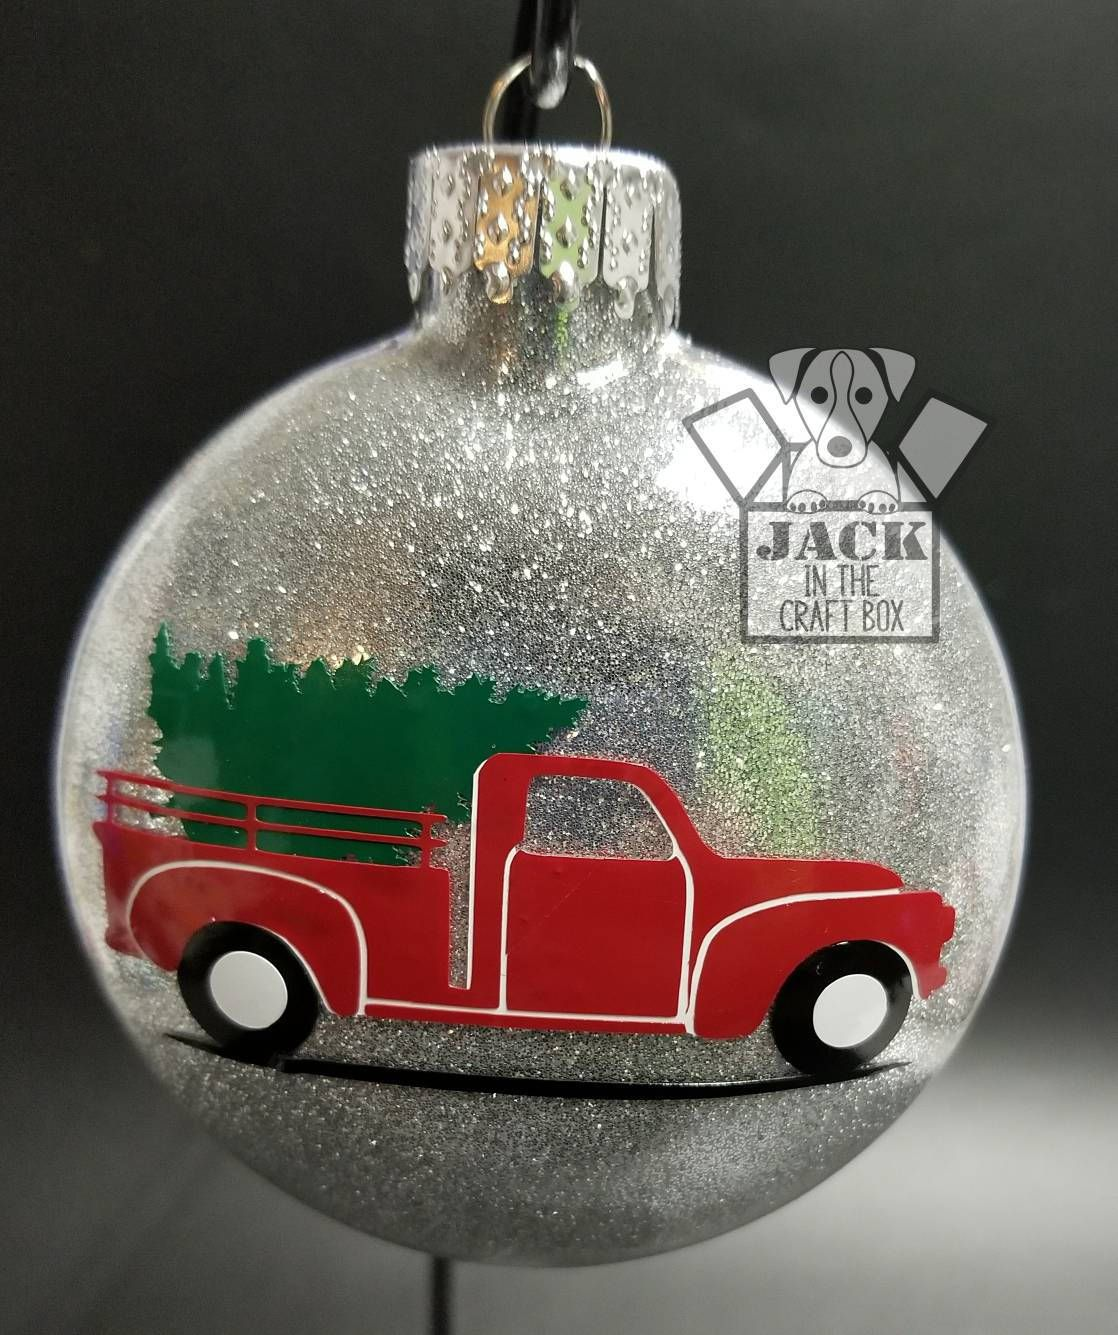 Old Red Truck Ornament Christmas Can Be Personalized Etsy Christmas Ornaments Christmas Ornaments Homemade Painted Christmas Ornaments